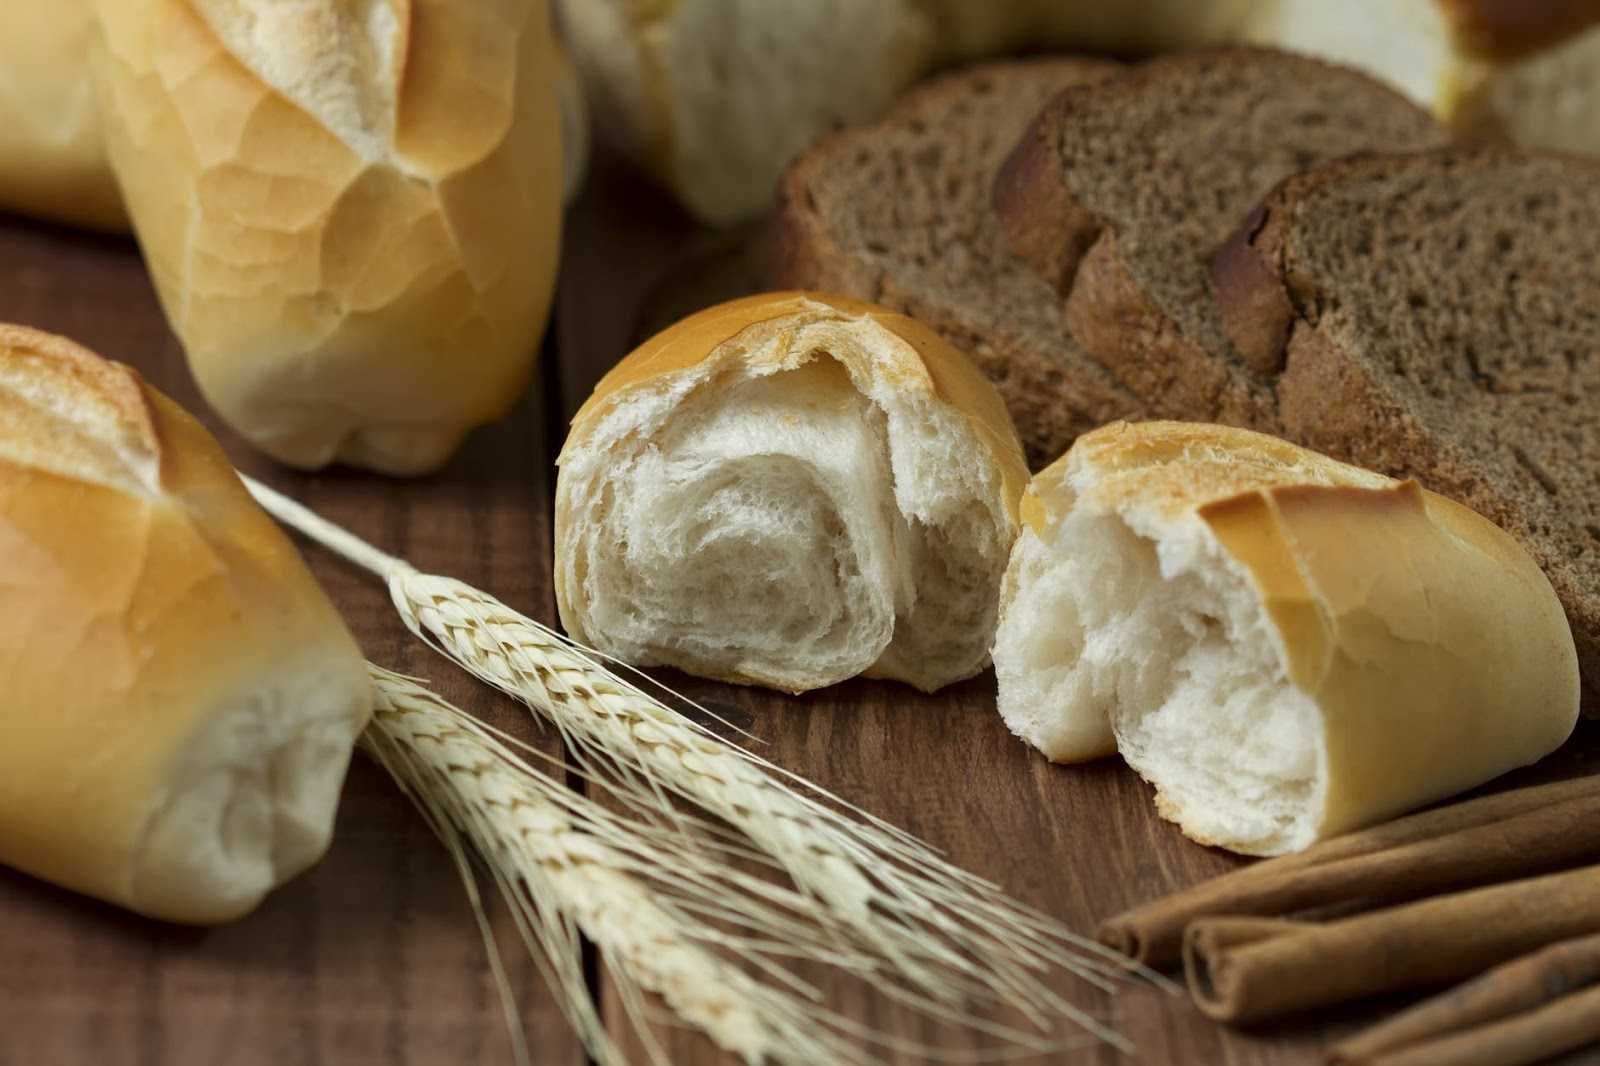 bread, wheat & carbohydrates